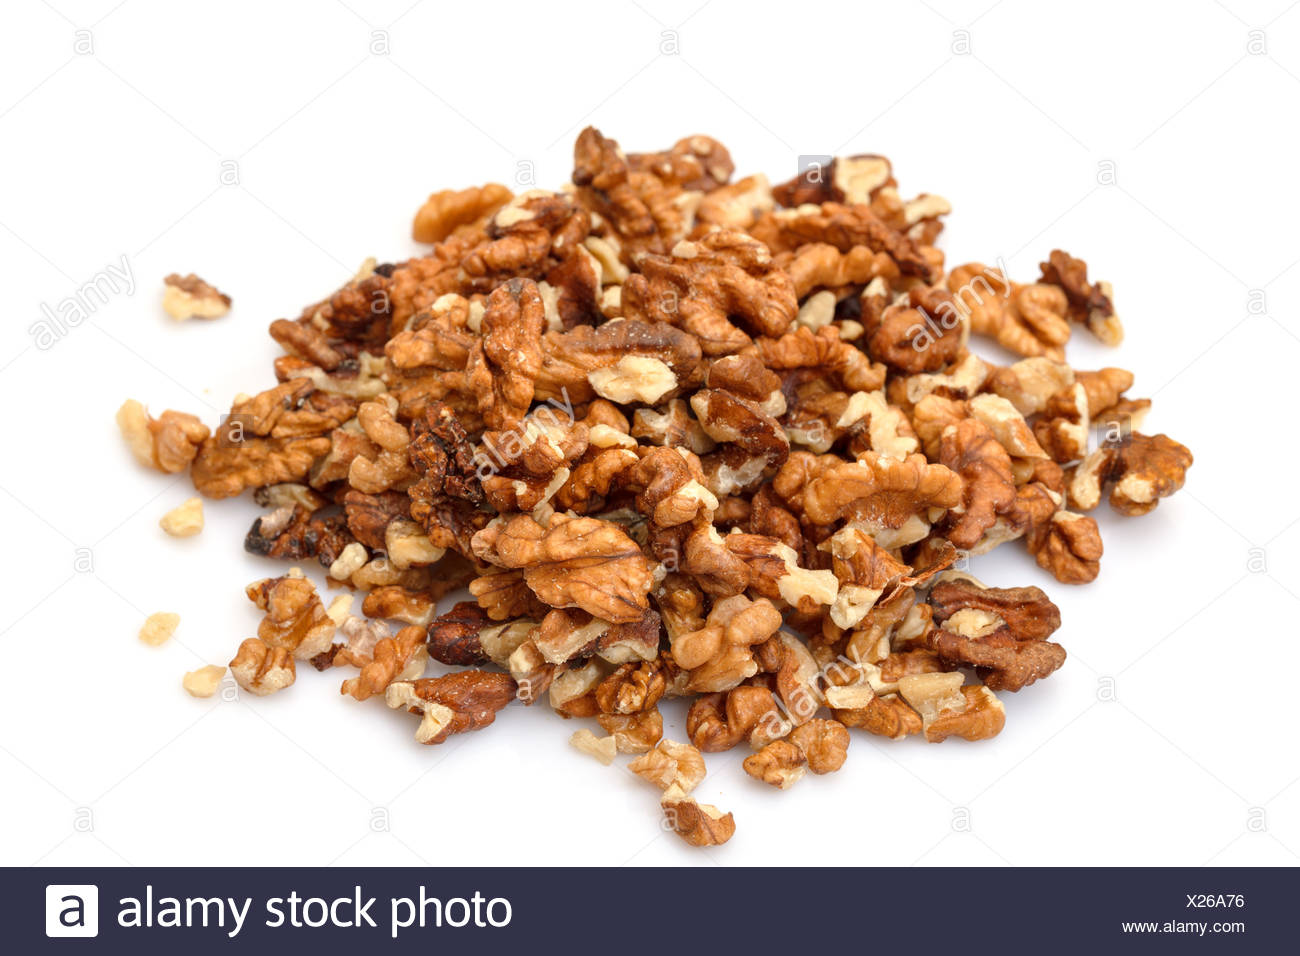 Heap Purified Walnuts - Stock Image